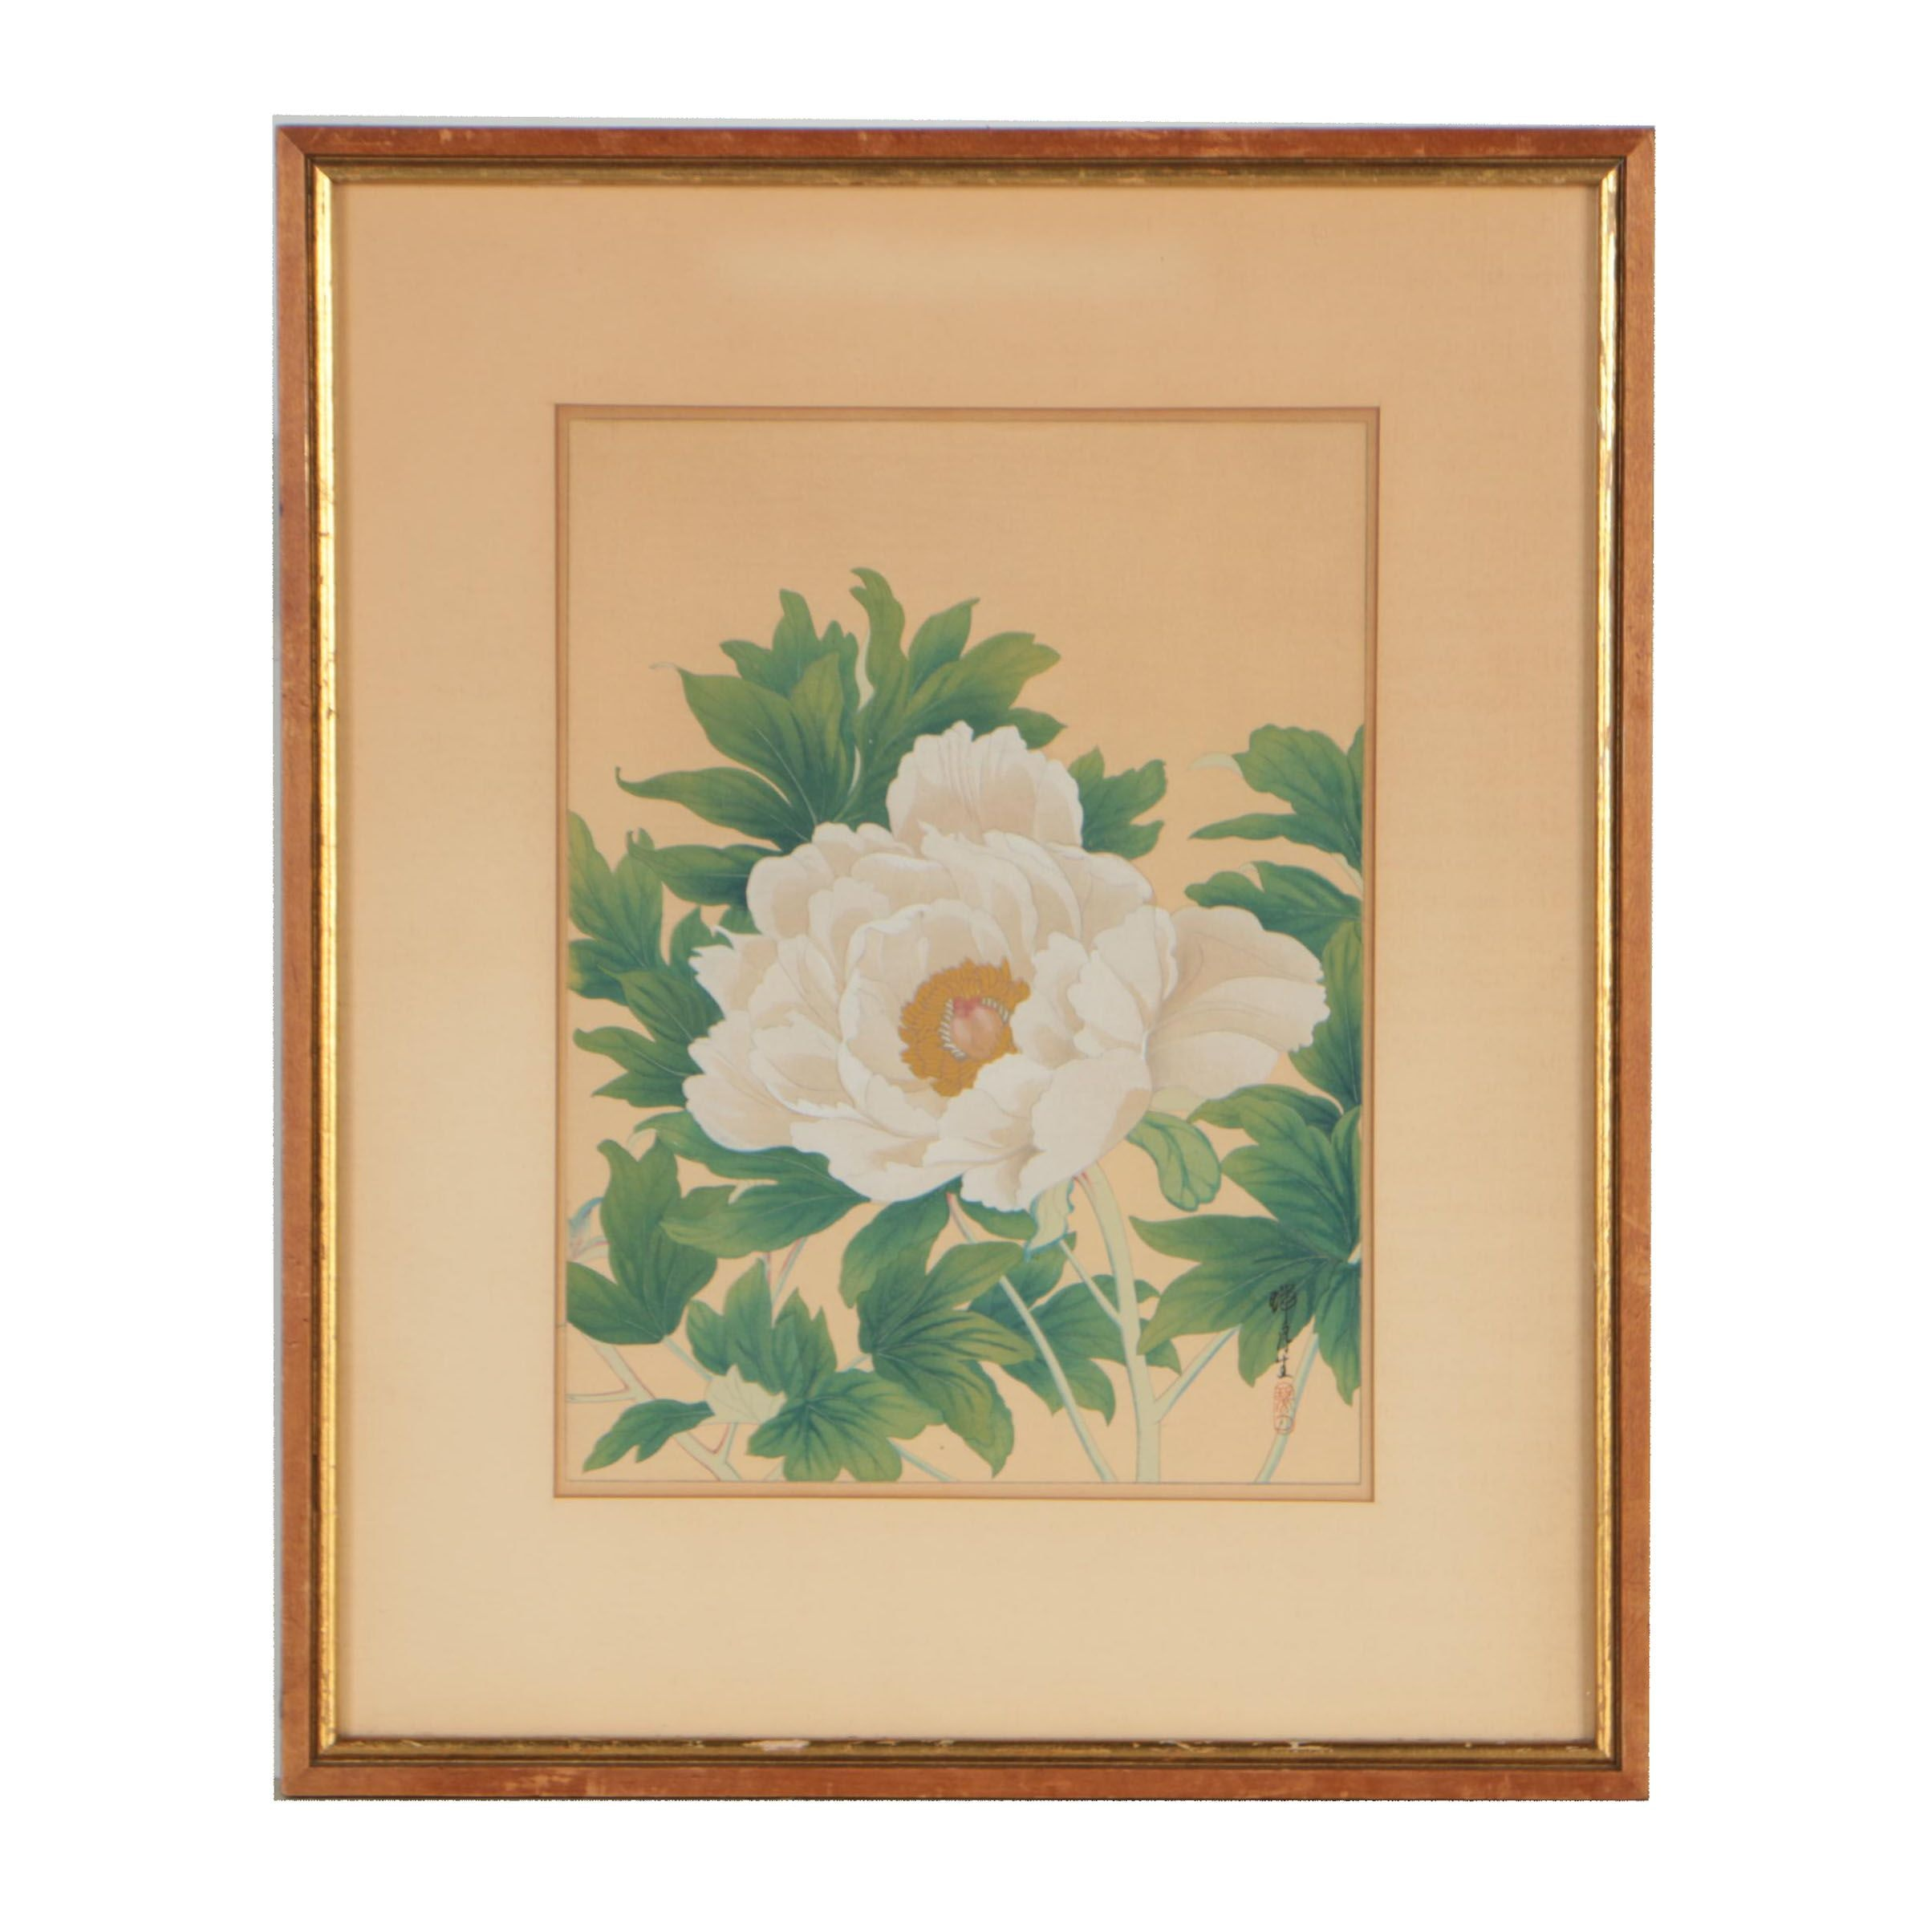 East Asian Woodblock of Peony